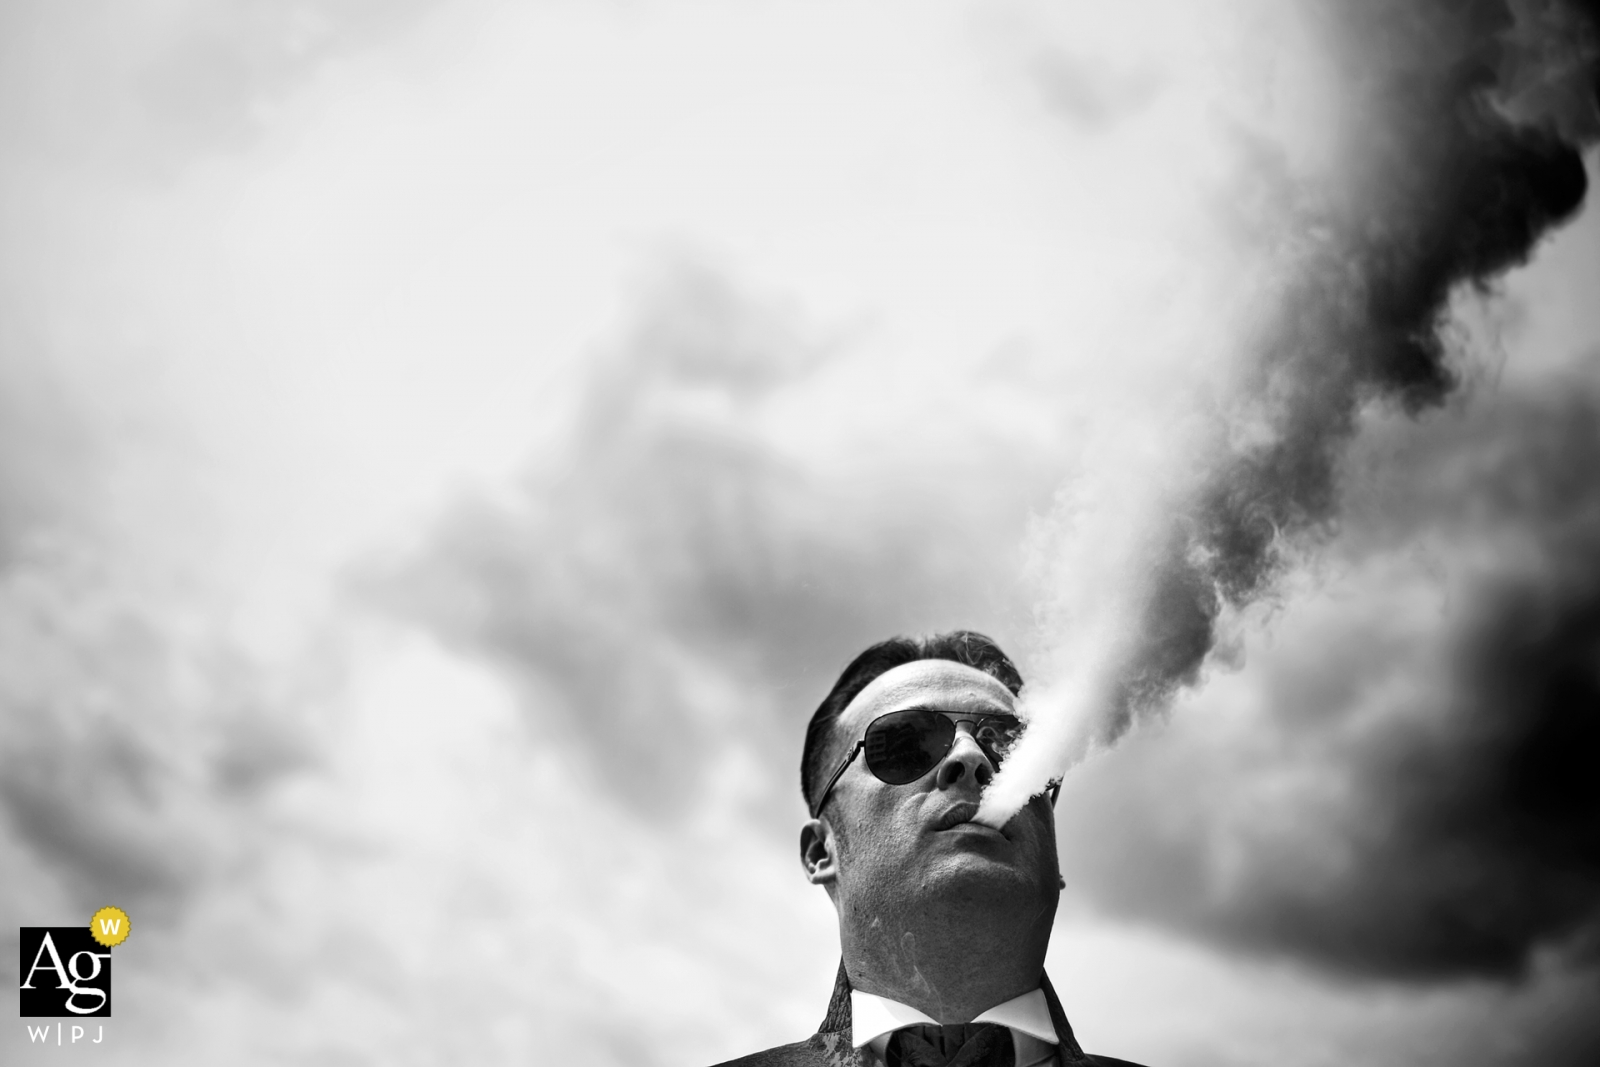 black and white creative photography detail | man blowing vapor clouds